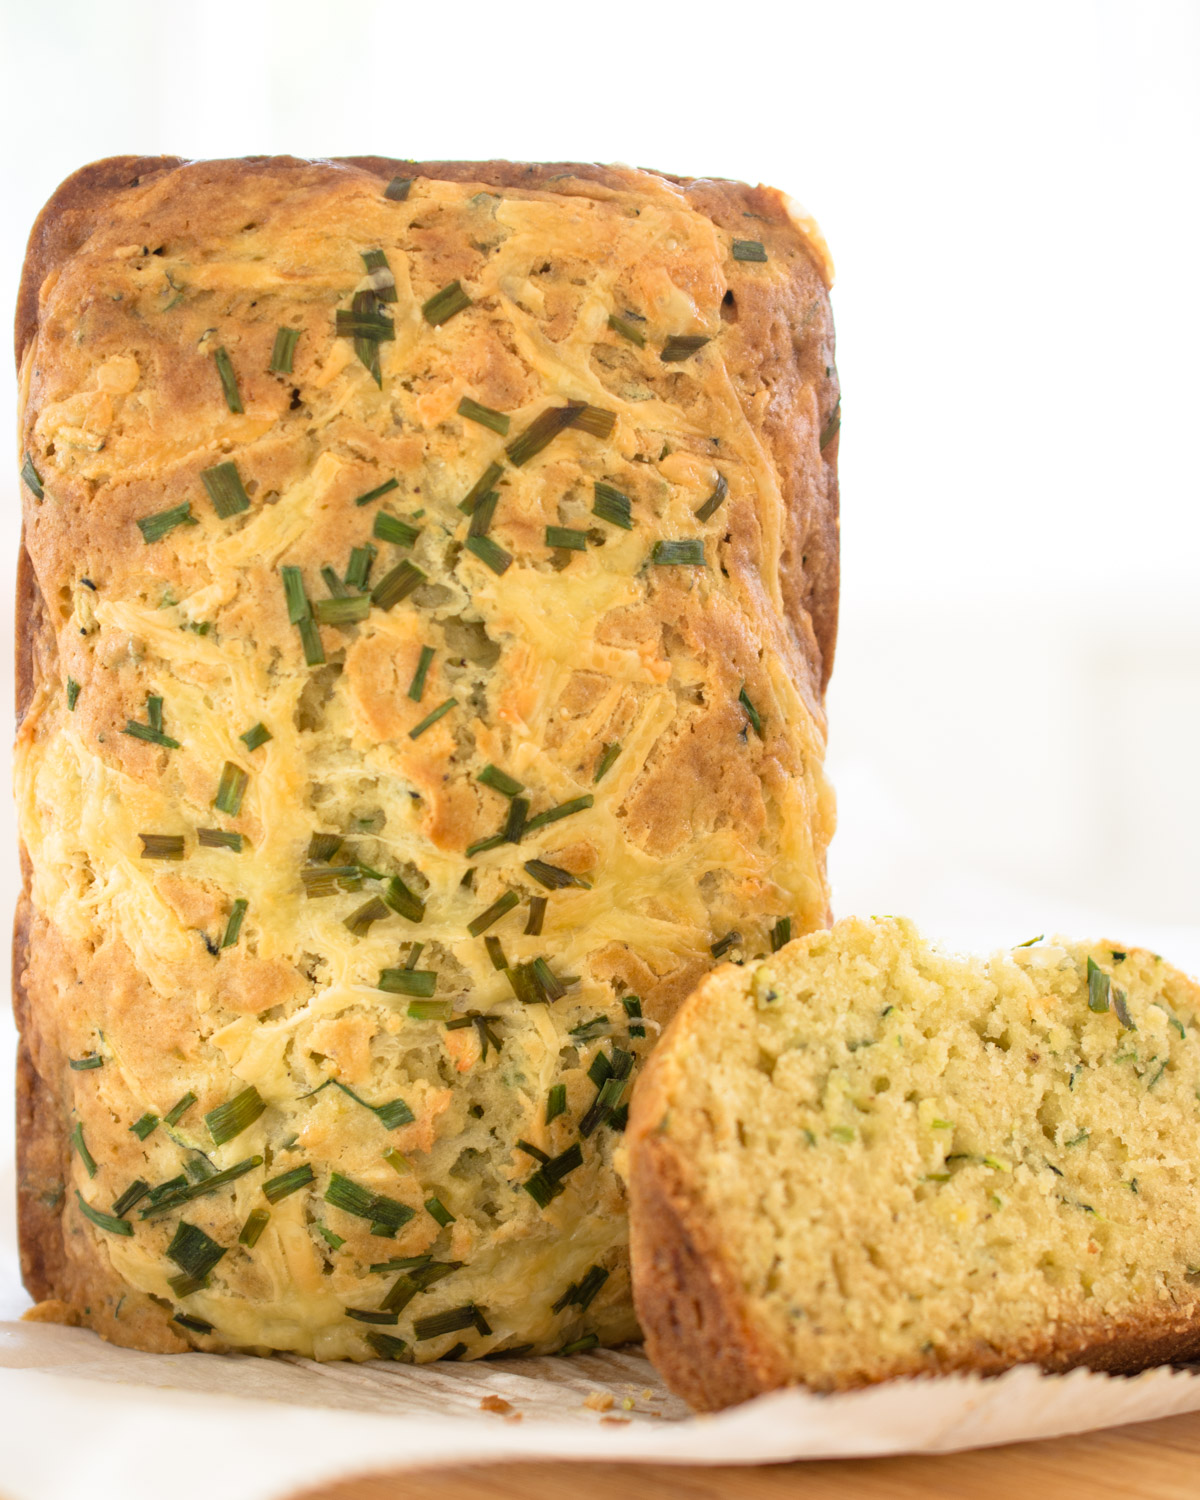 Cheesy Zucchini Bread topped with chives.